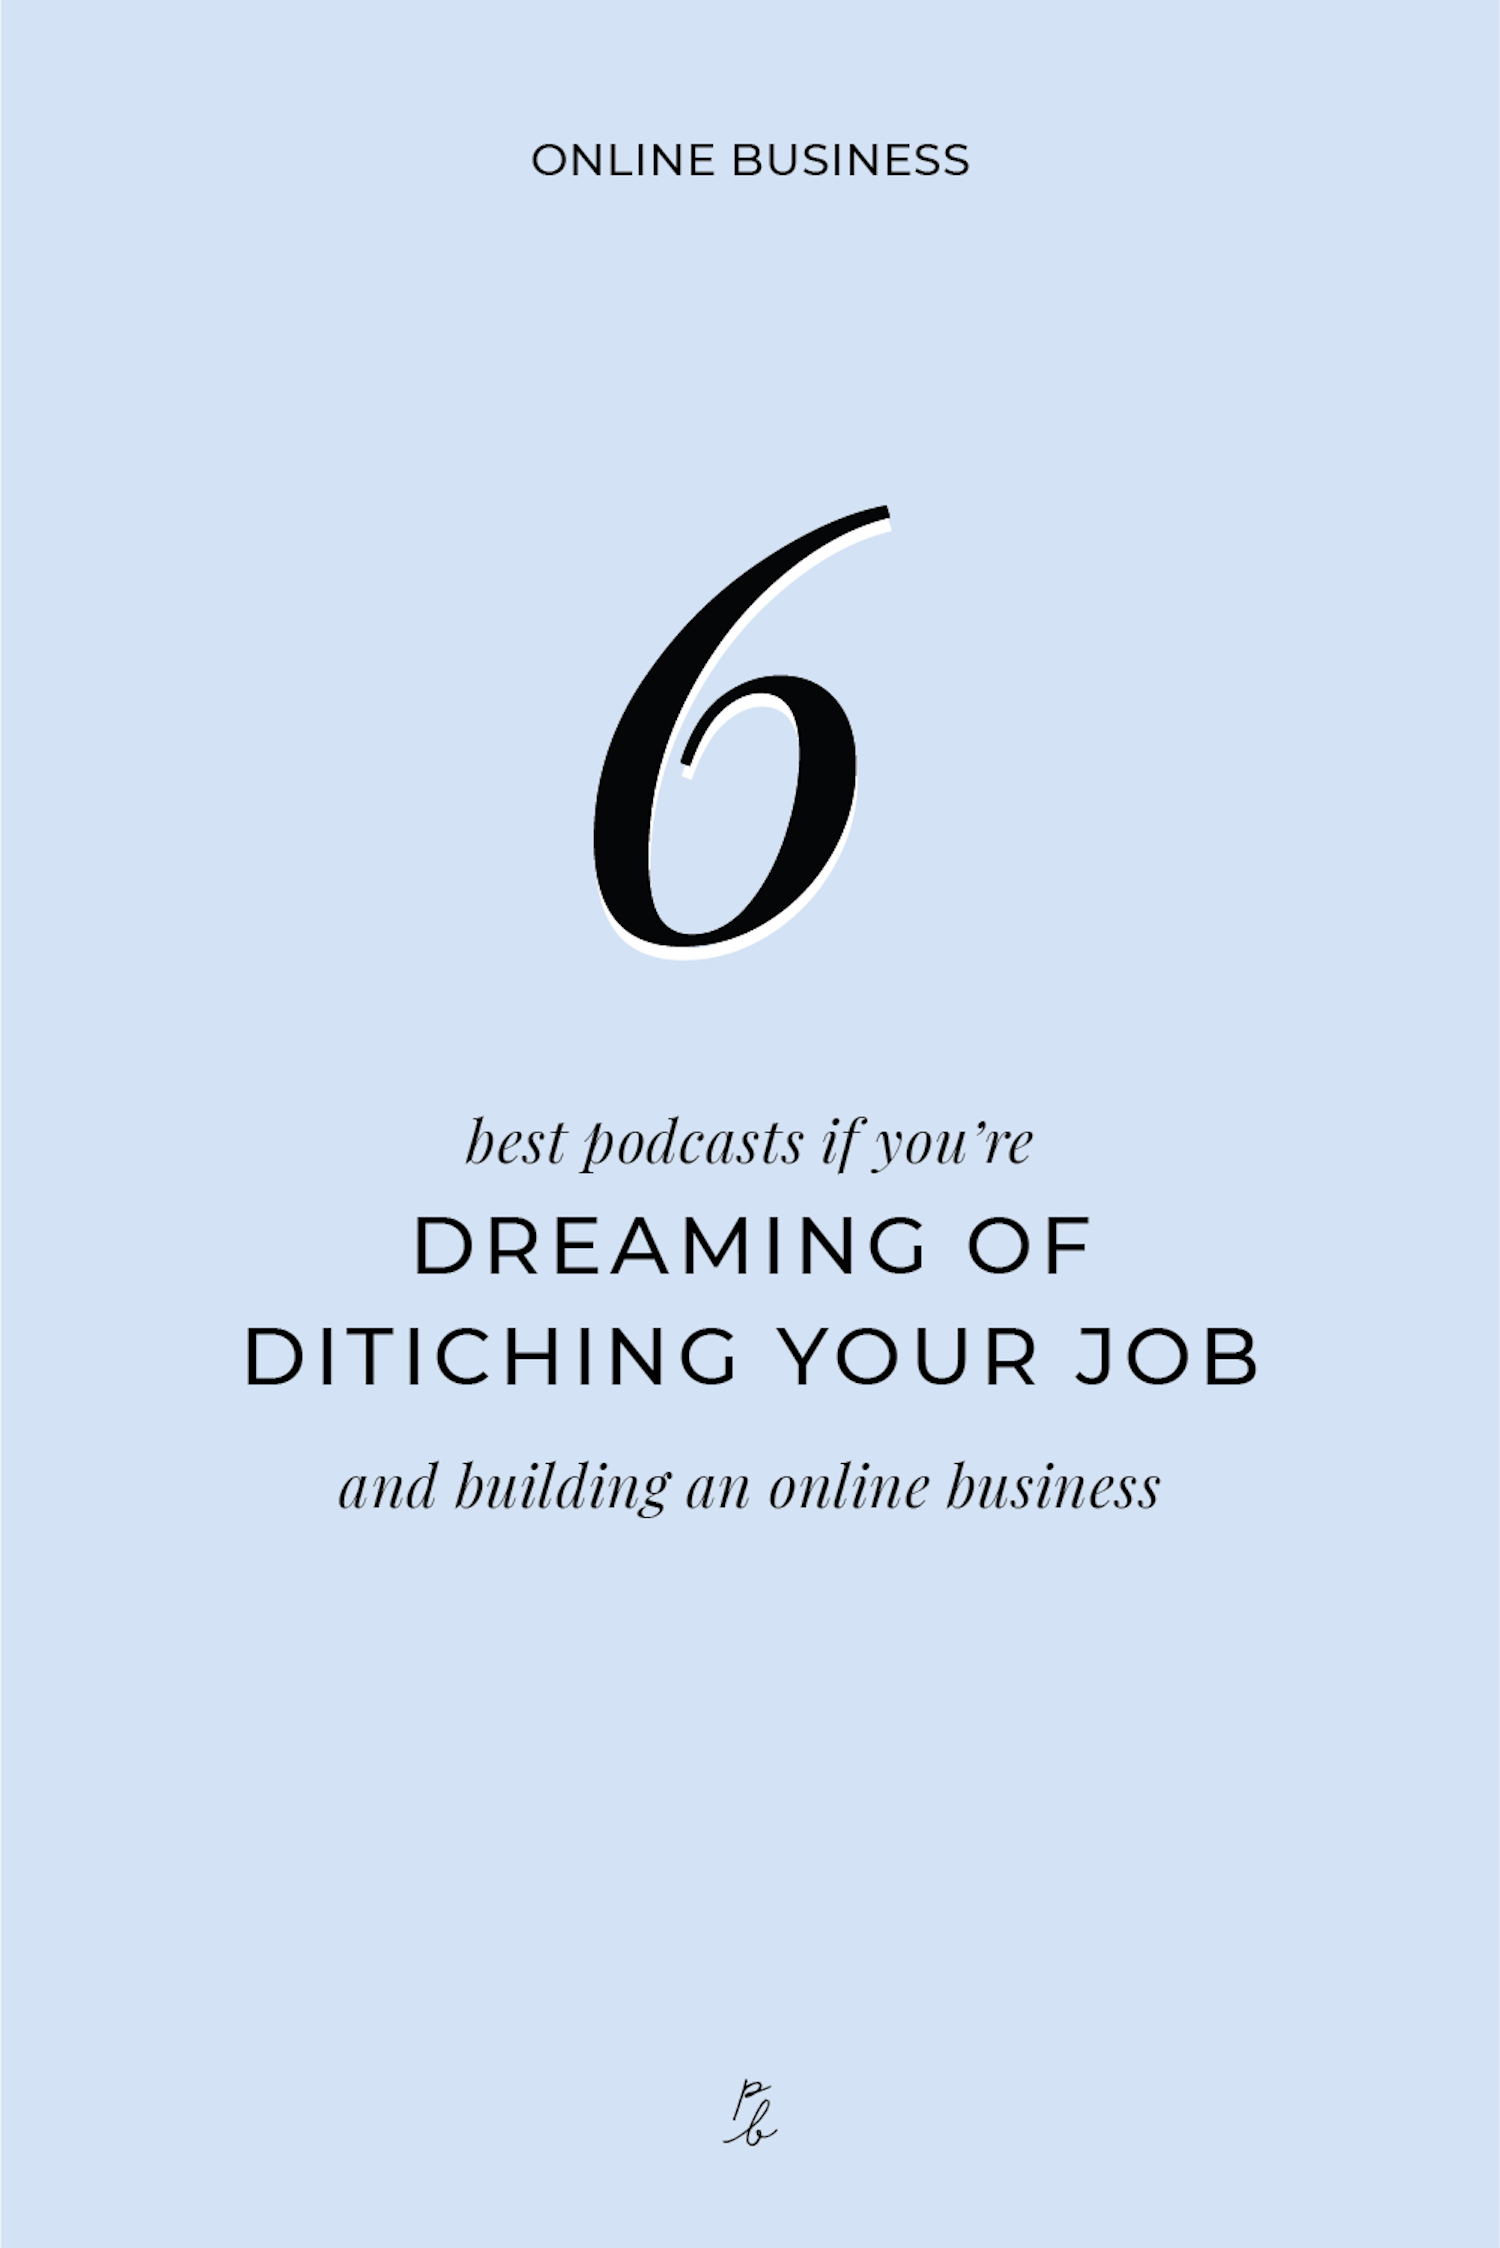 6 best podcasts if you're dreaming of ditching your job and building an online business.jpeg